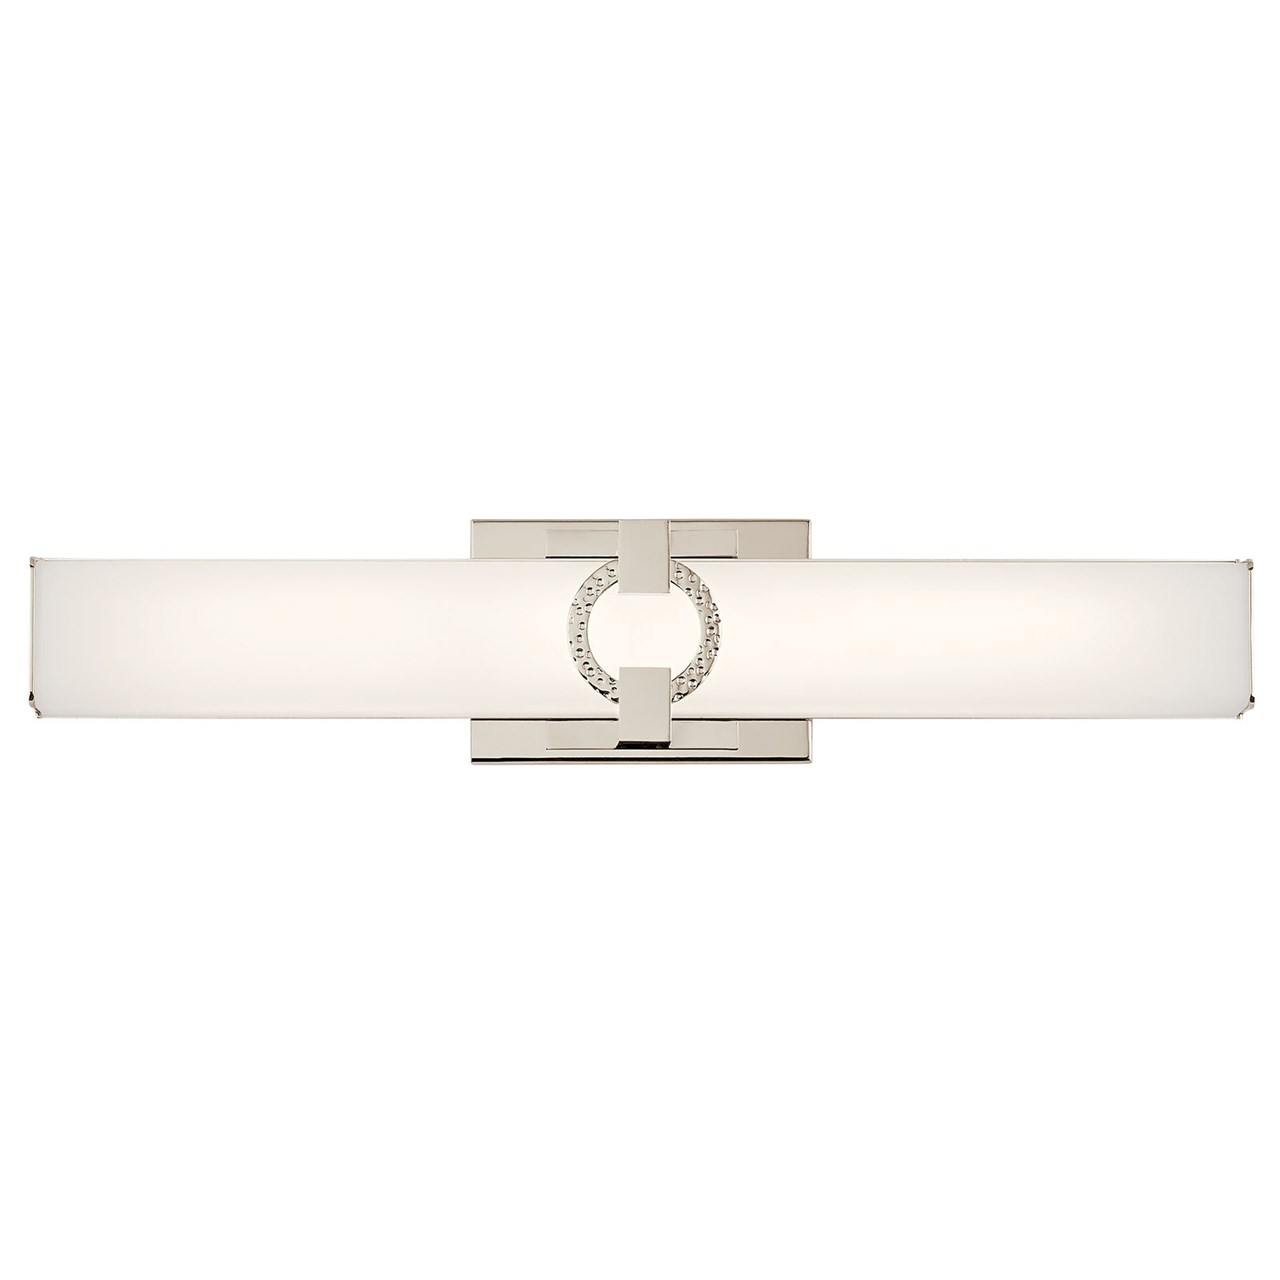 "Bordeaux 22"" LED Linear Vanity Light Polished Nickel™"